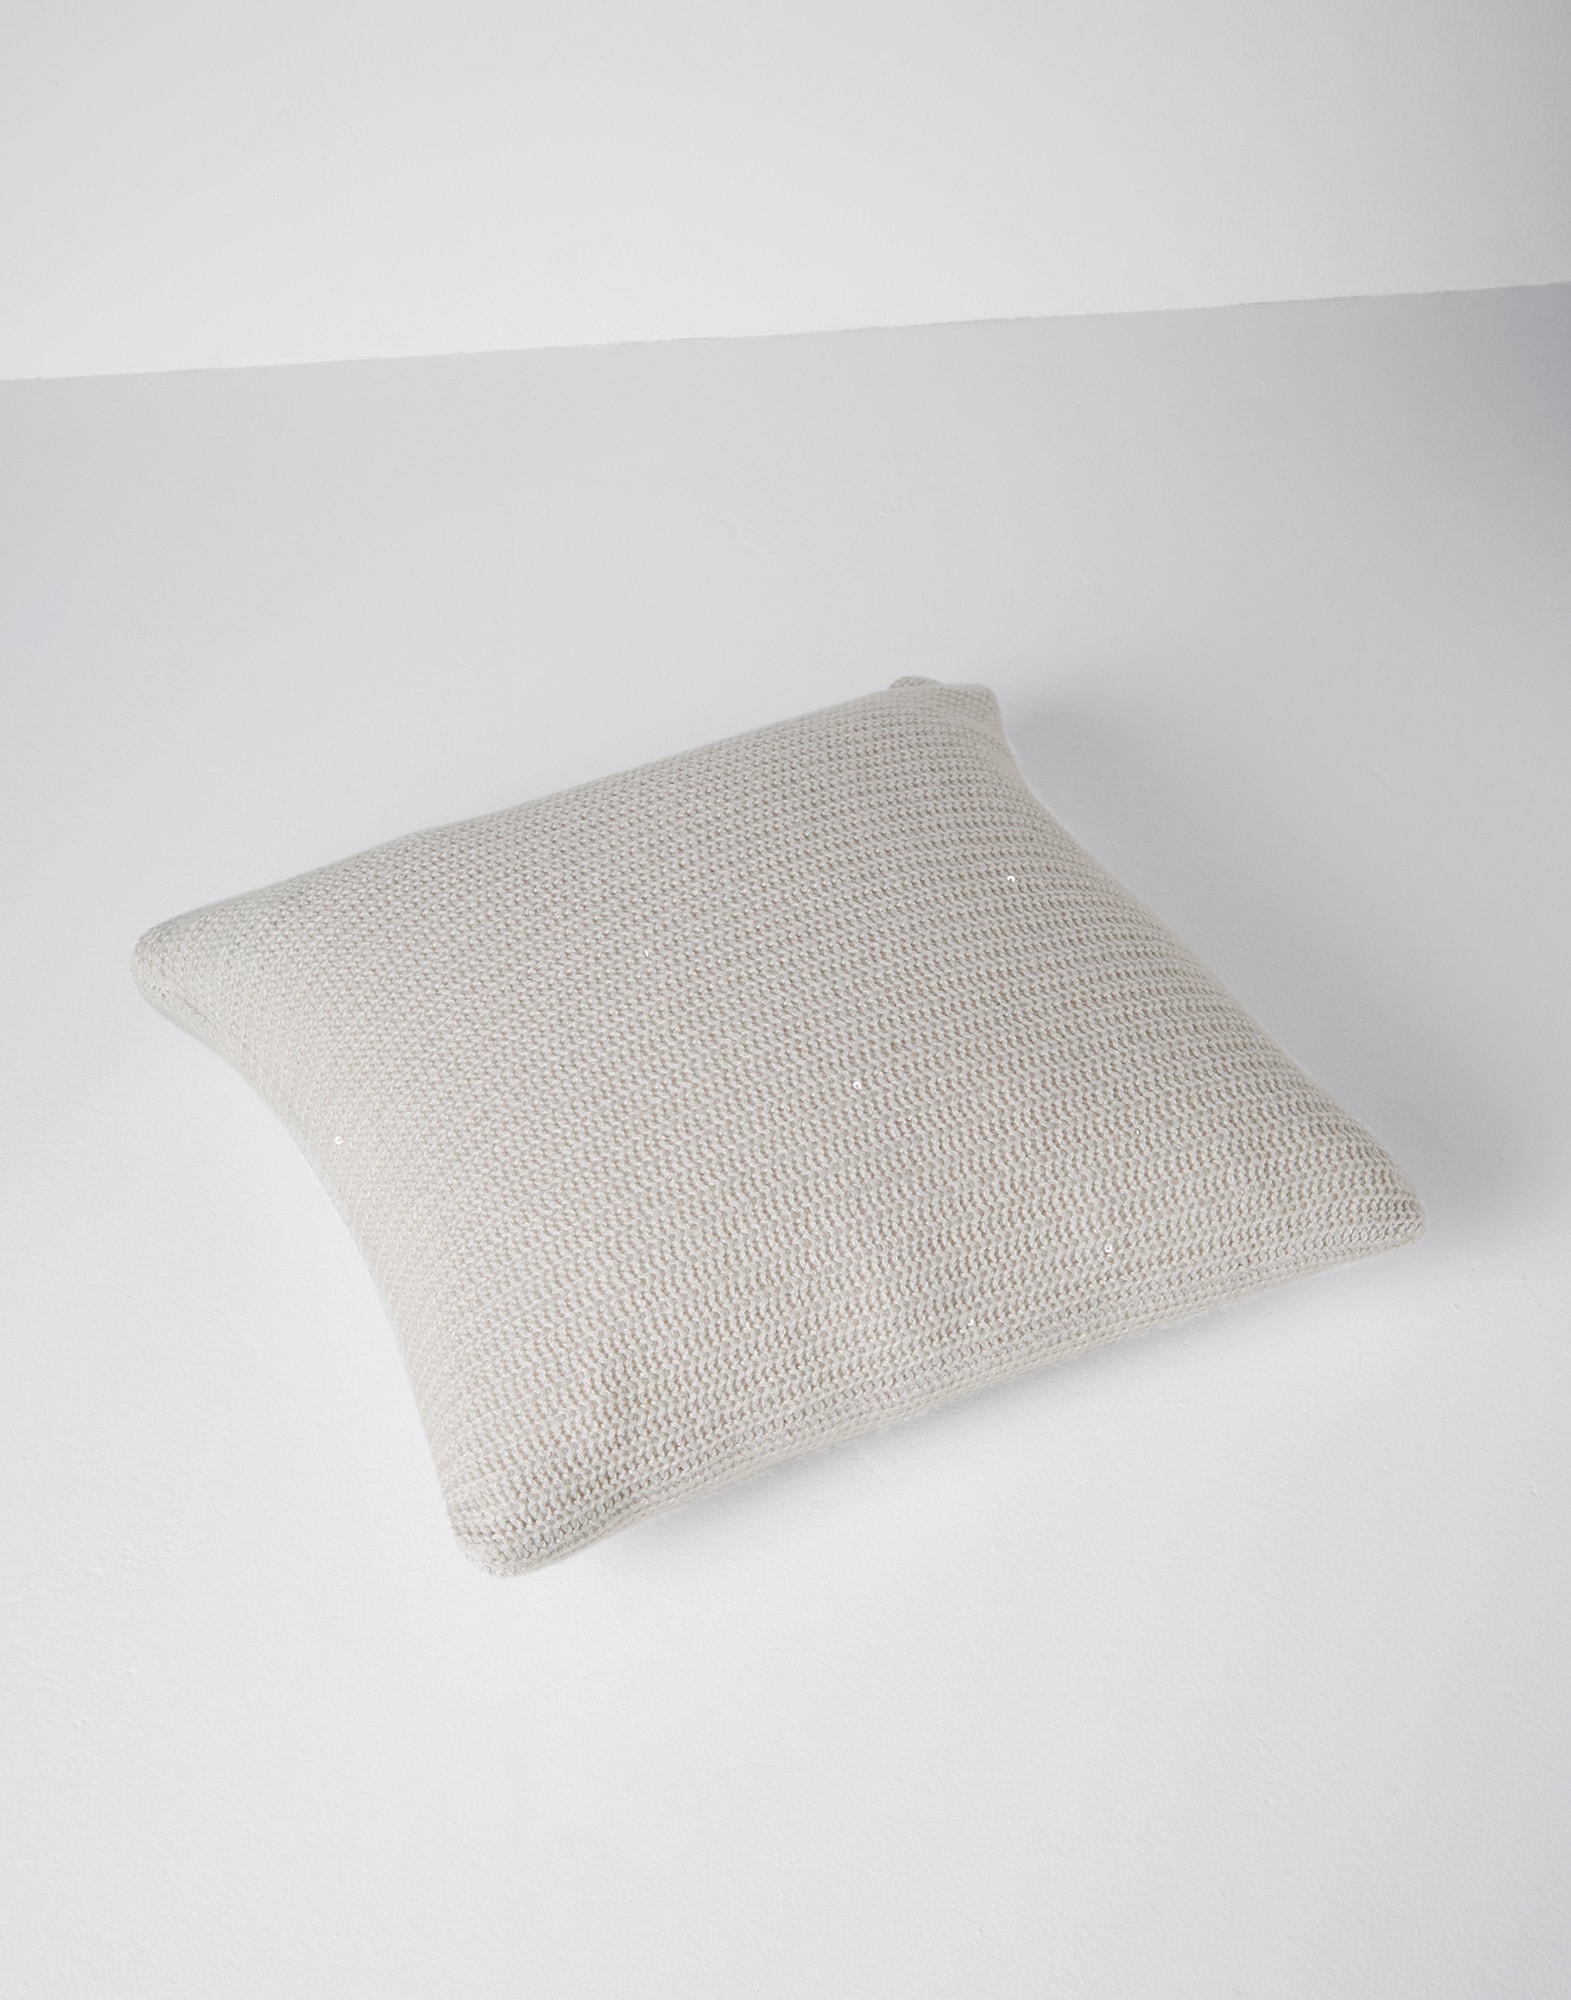 Knit Cushions Rice Lifestyle 0 - Brunello Cucinelli